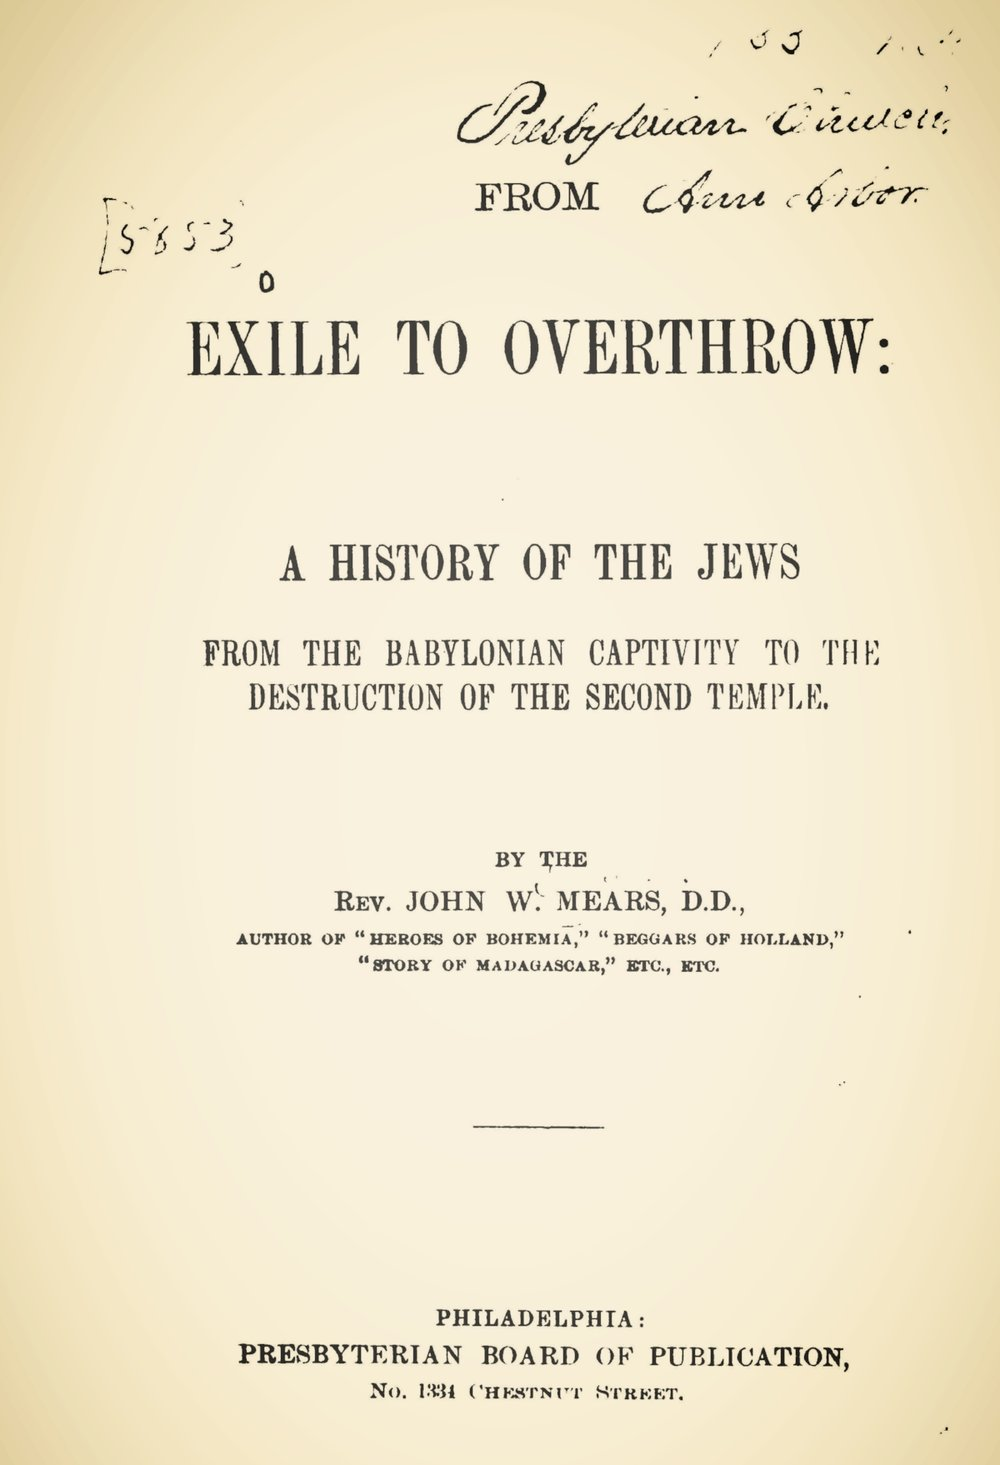 Mears, John William, From Exile to Overthrow Title Page.jpg